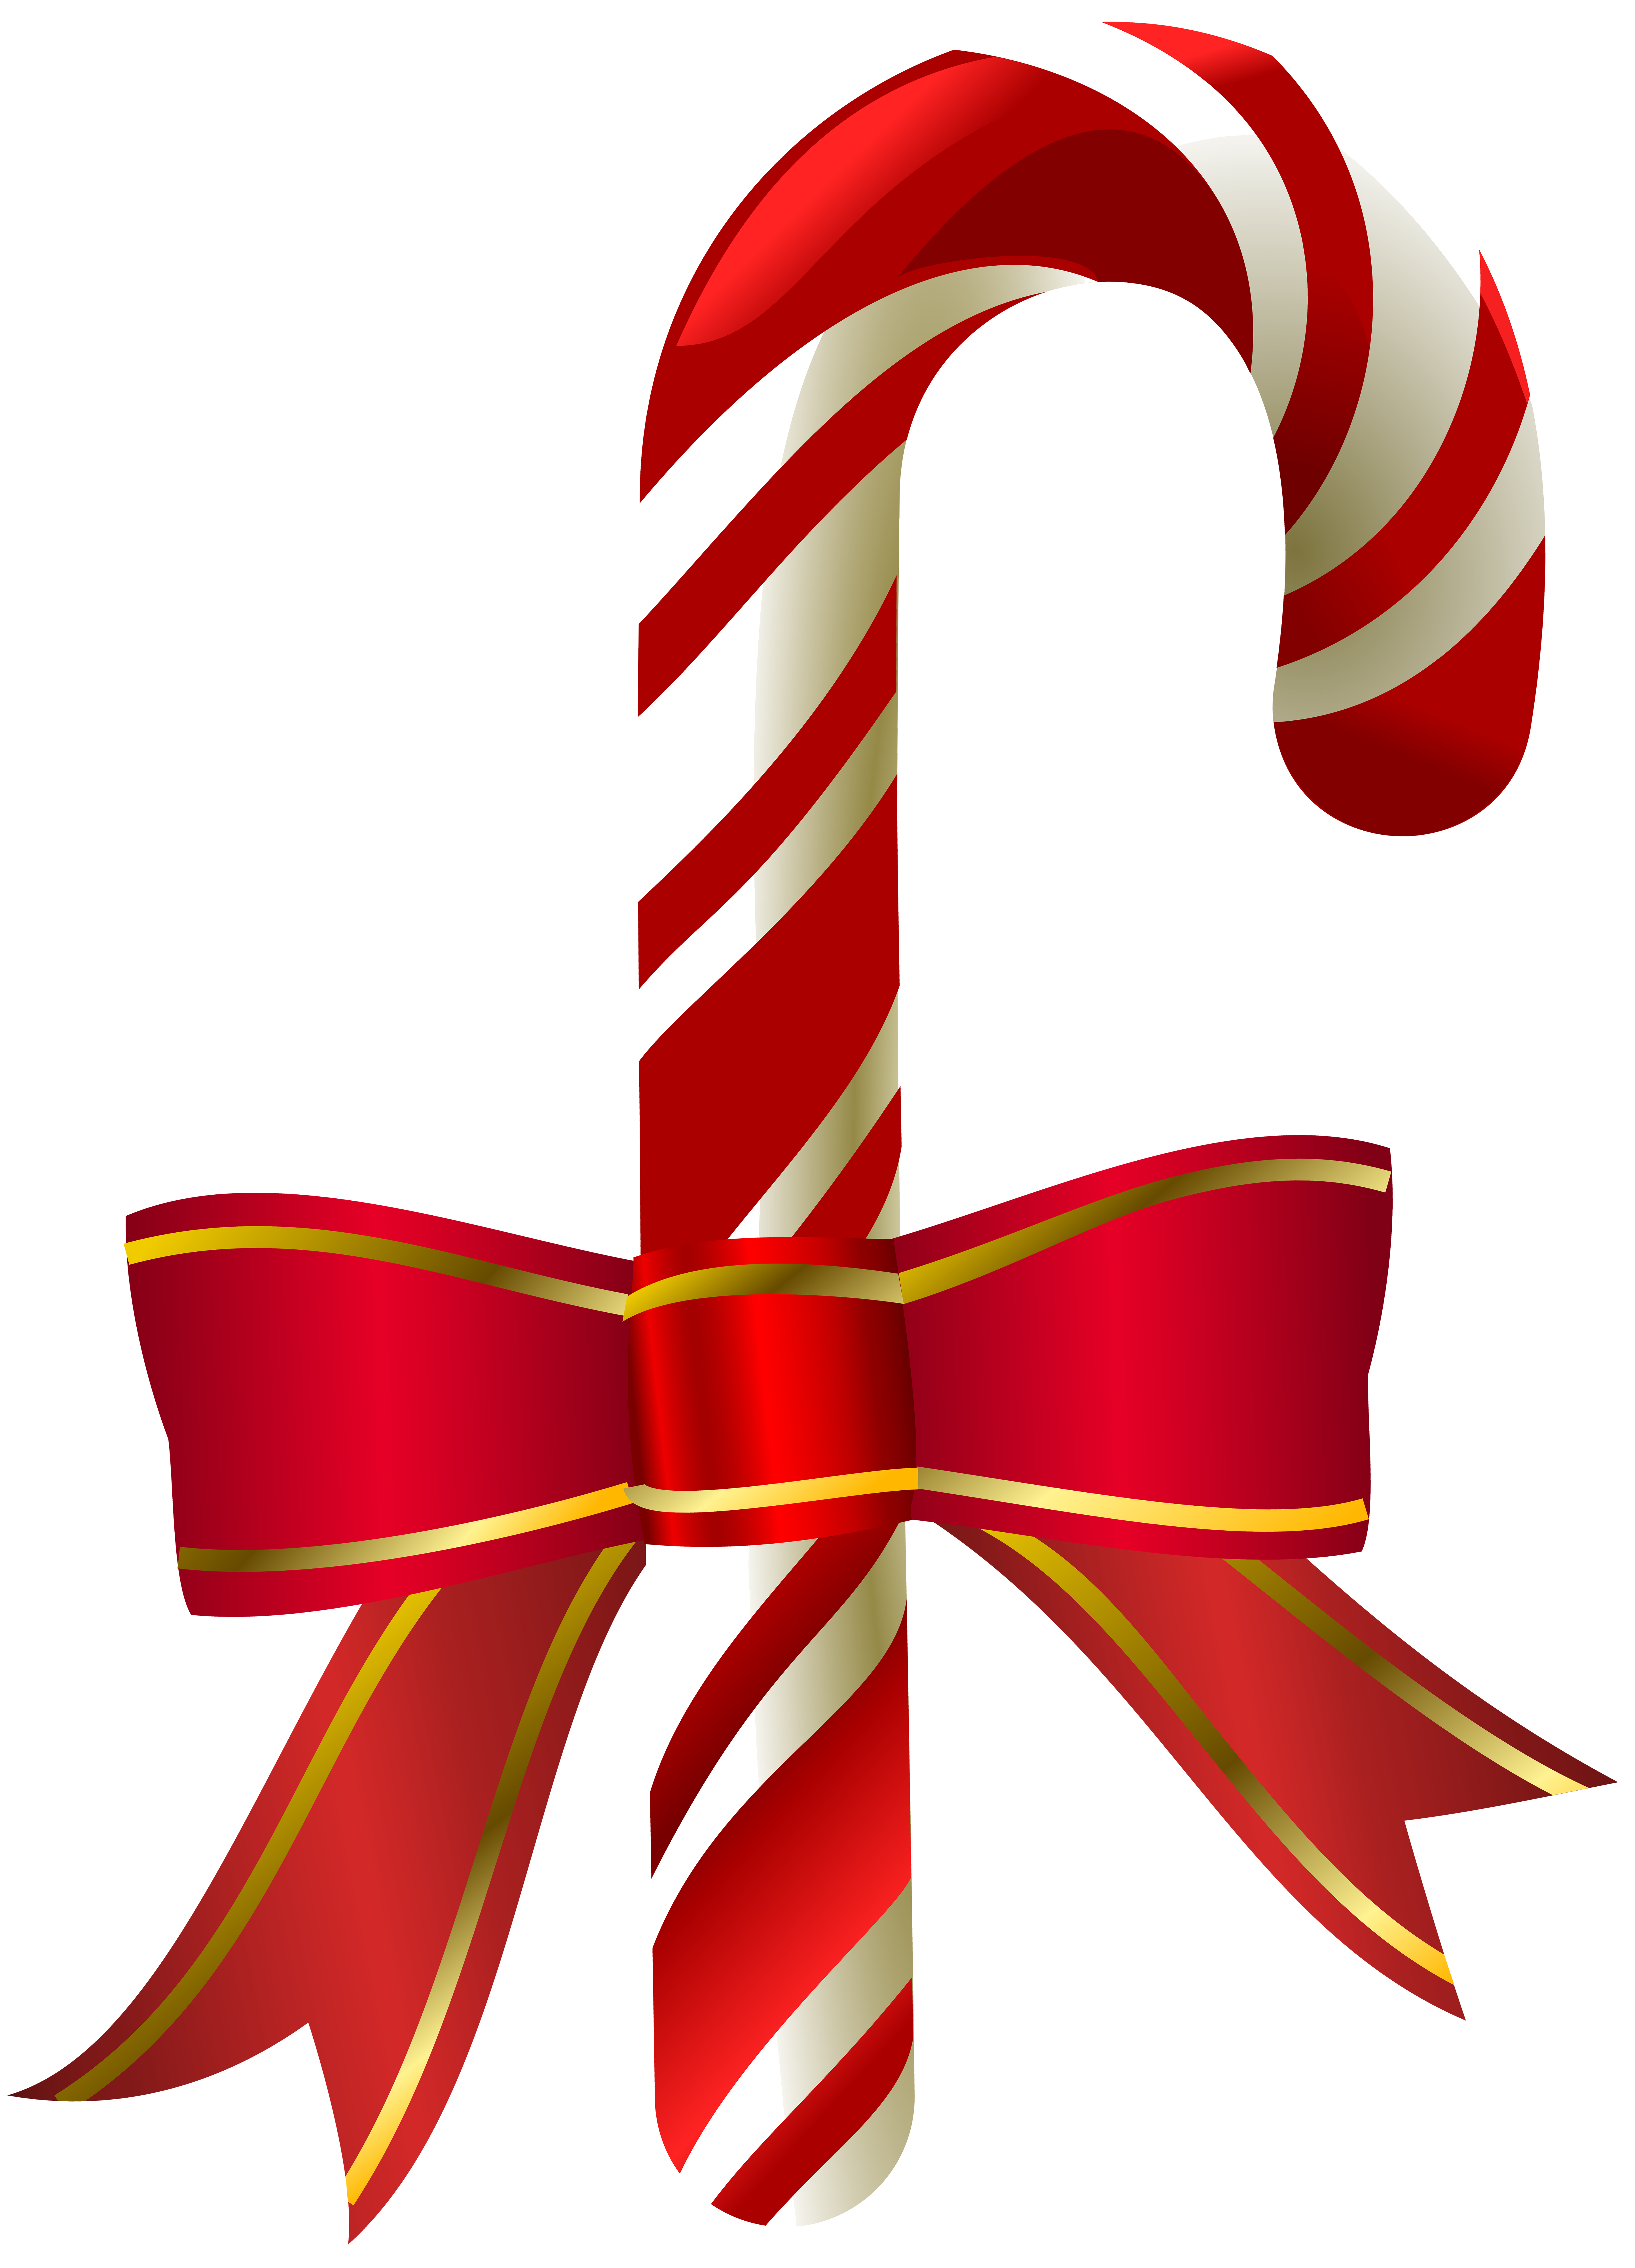 Candy Cane Collection Of Candycane Clipart Free Best Png.